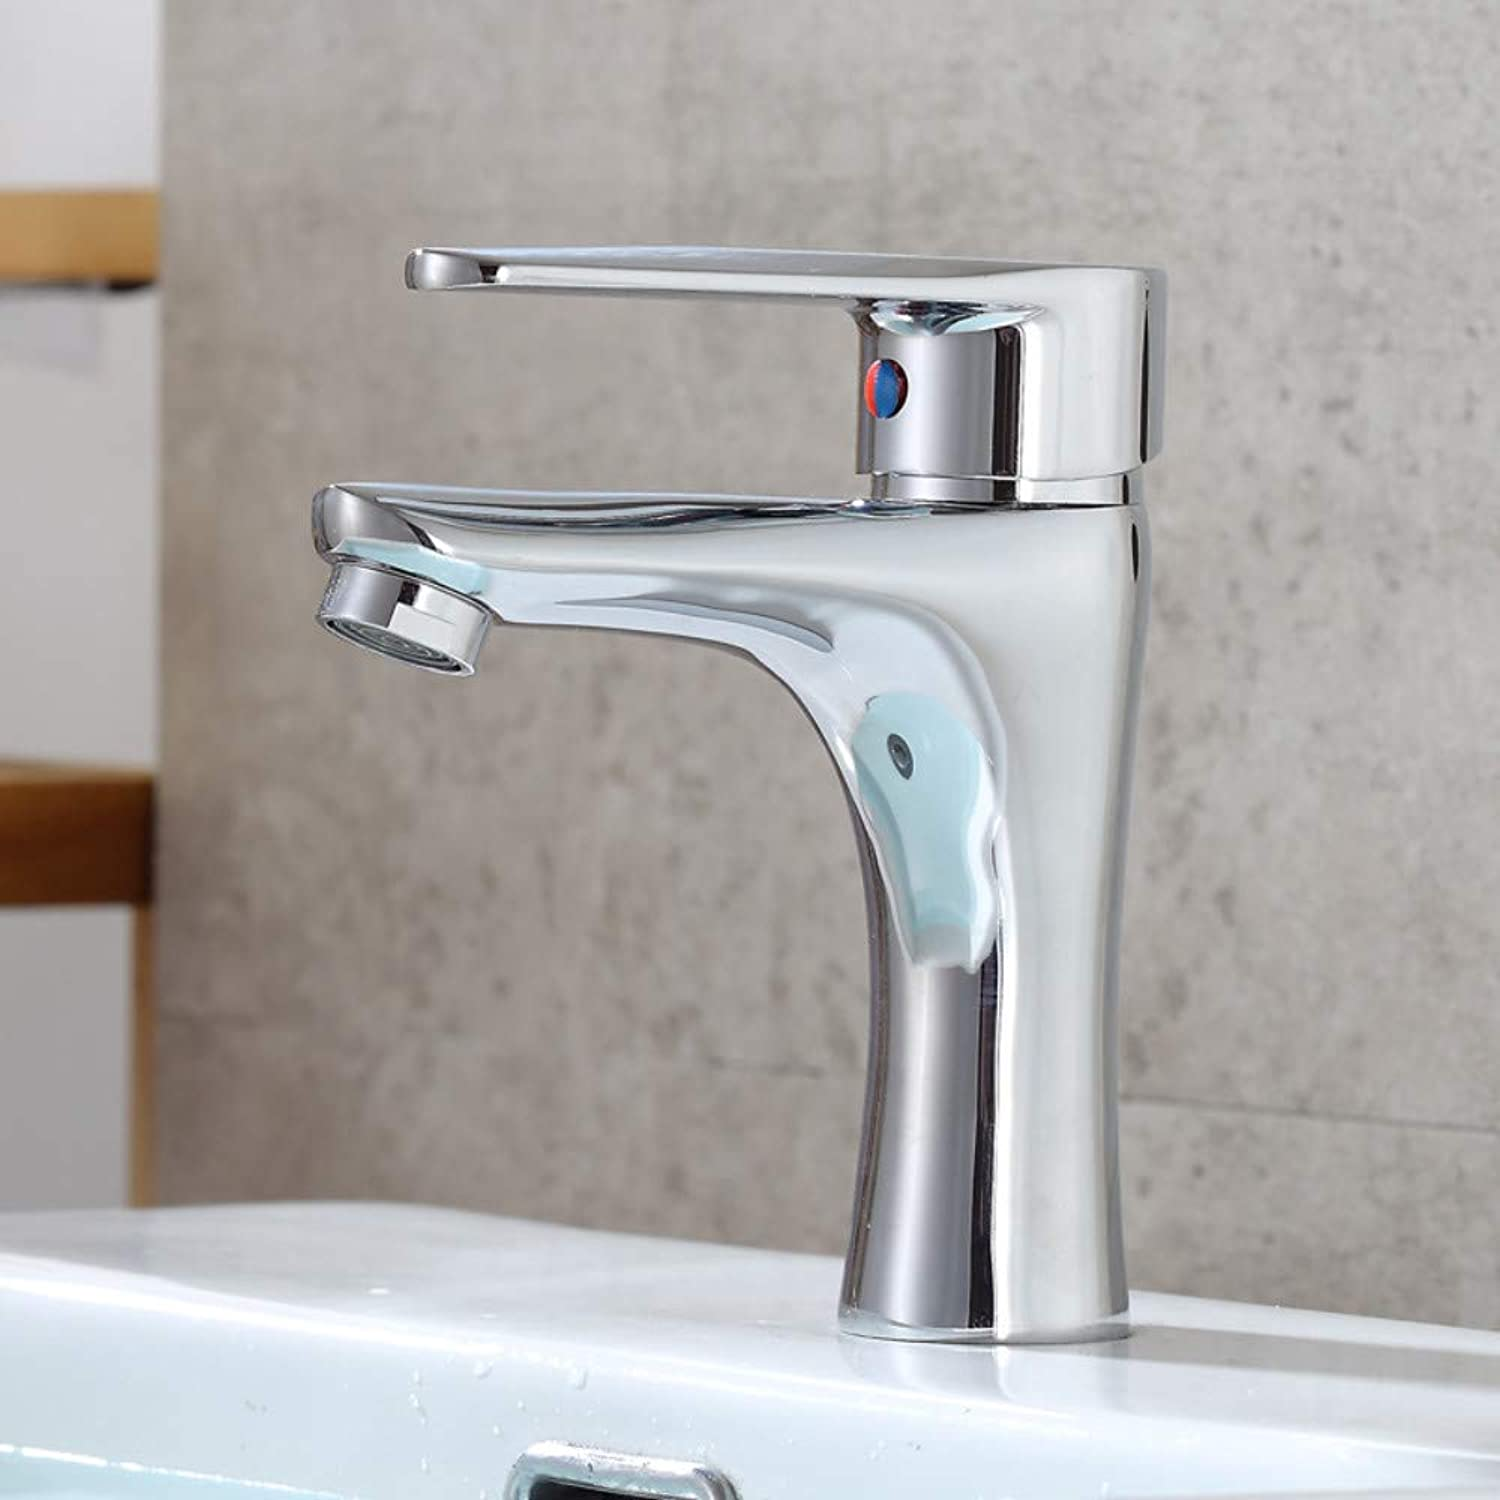 Kitchen Sink Tapbathroom Sink Tap basin Single Hole Faucet Copper?Bathroom Washbasin Mixed Water Hot And Cold Faucet Above Counter Basin Faucet